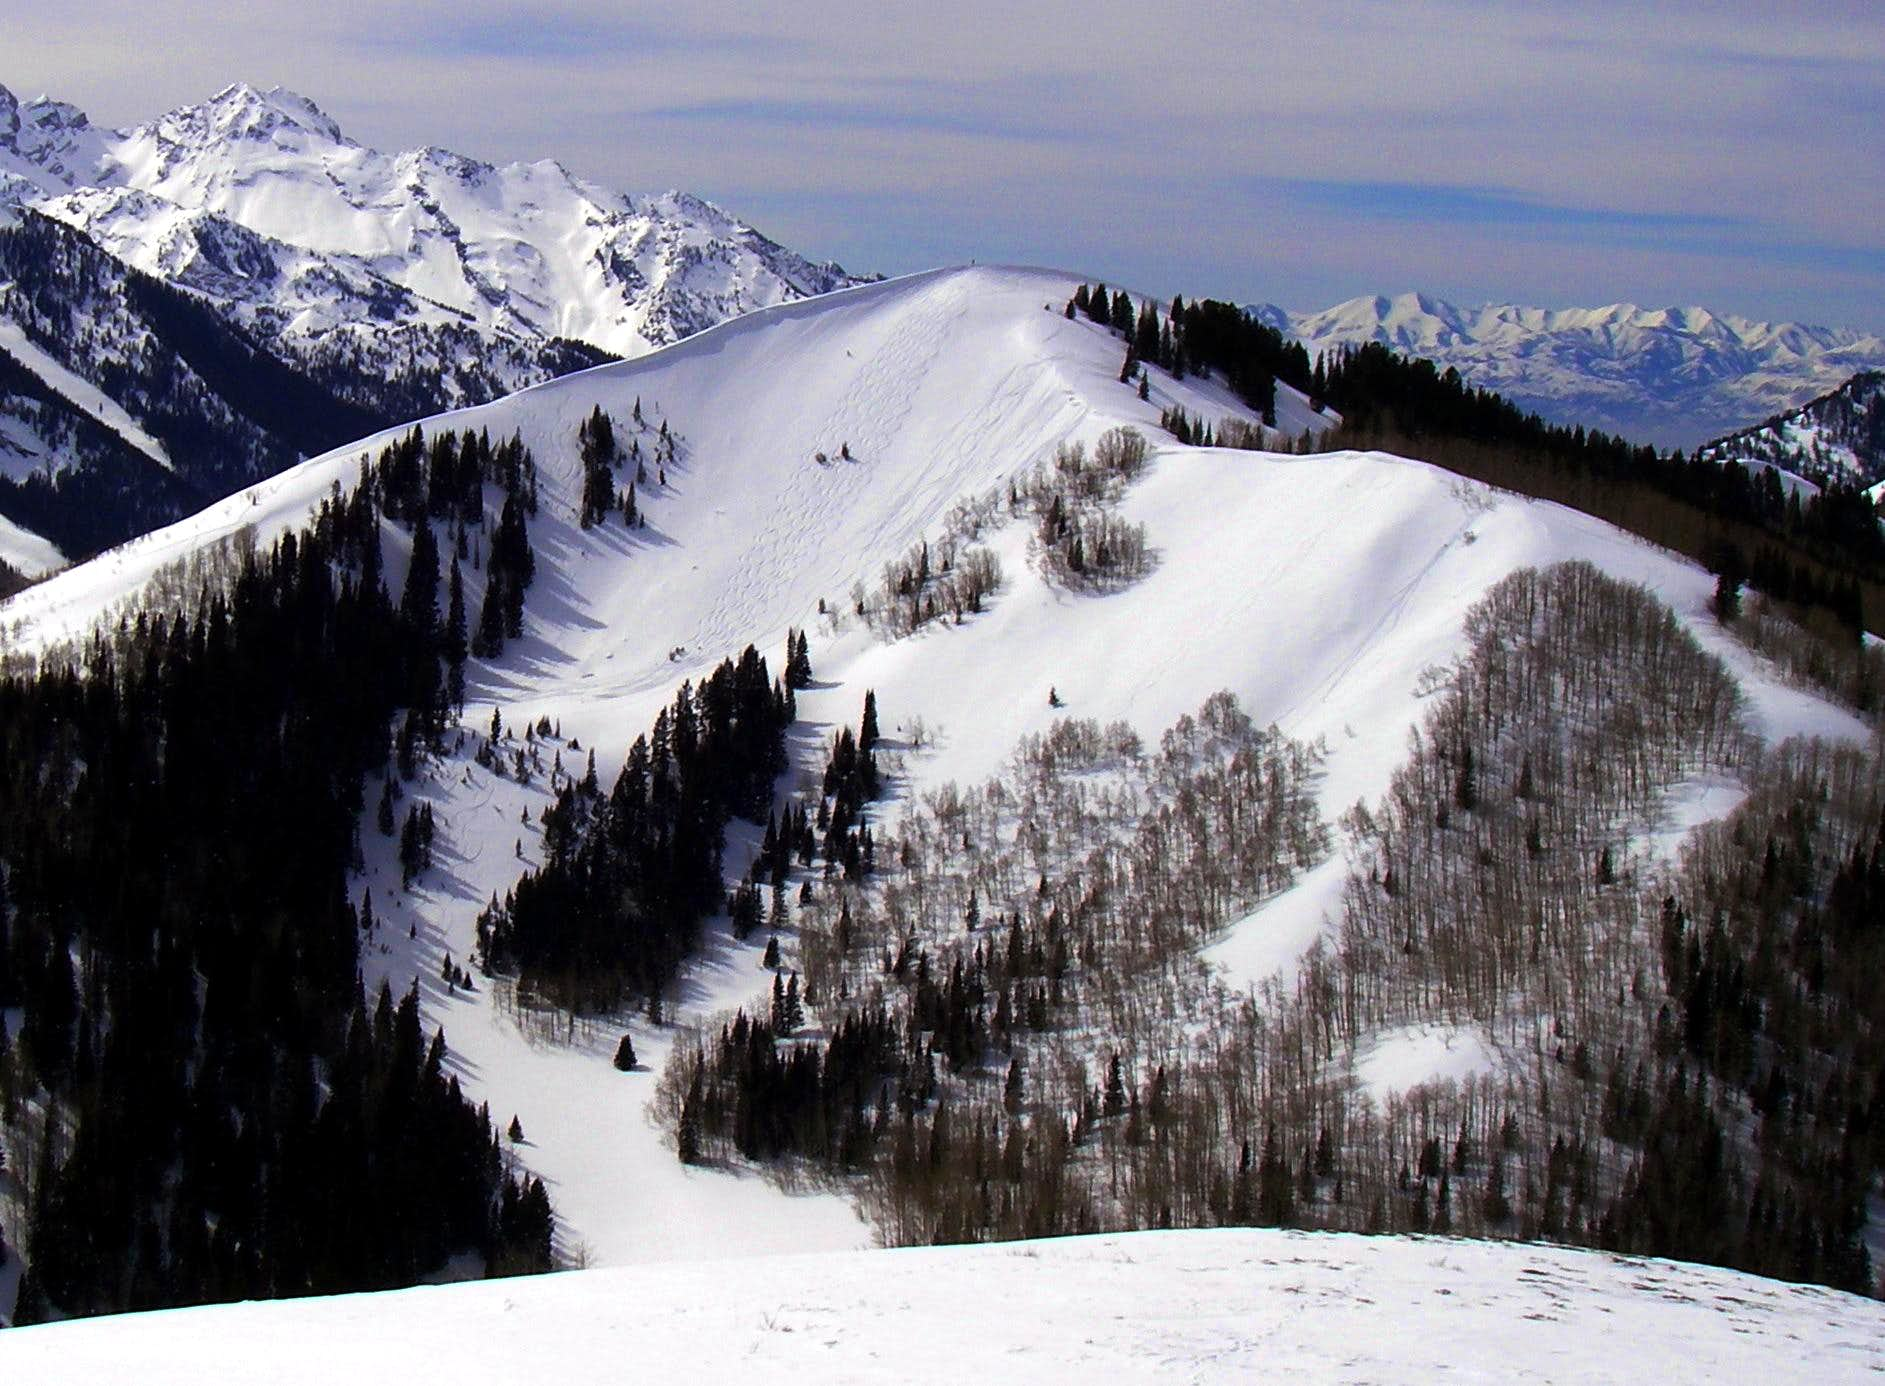 Reynolds Peak Skiing